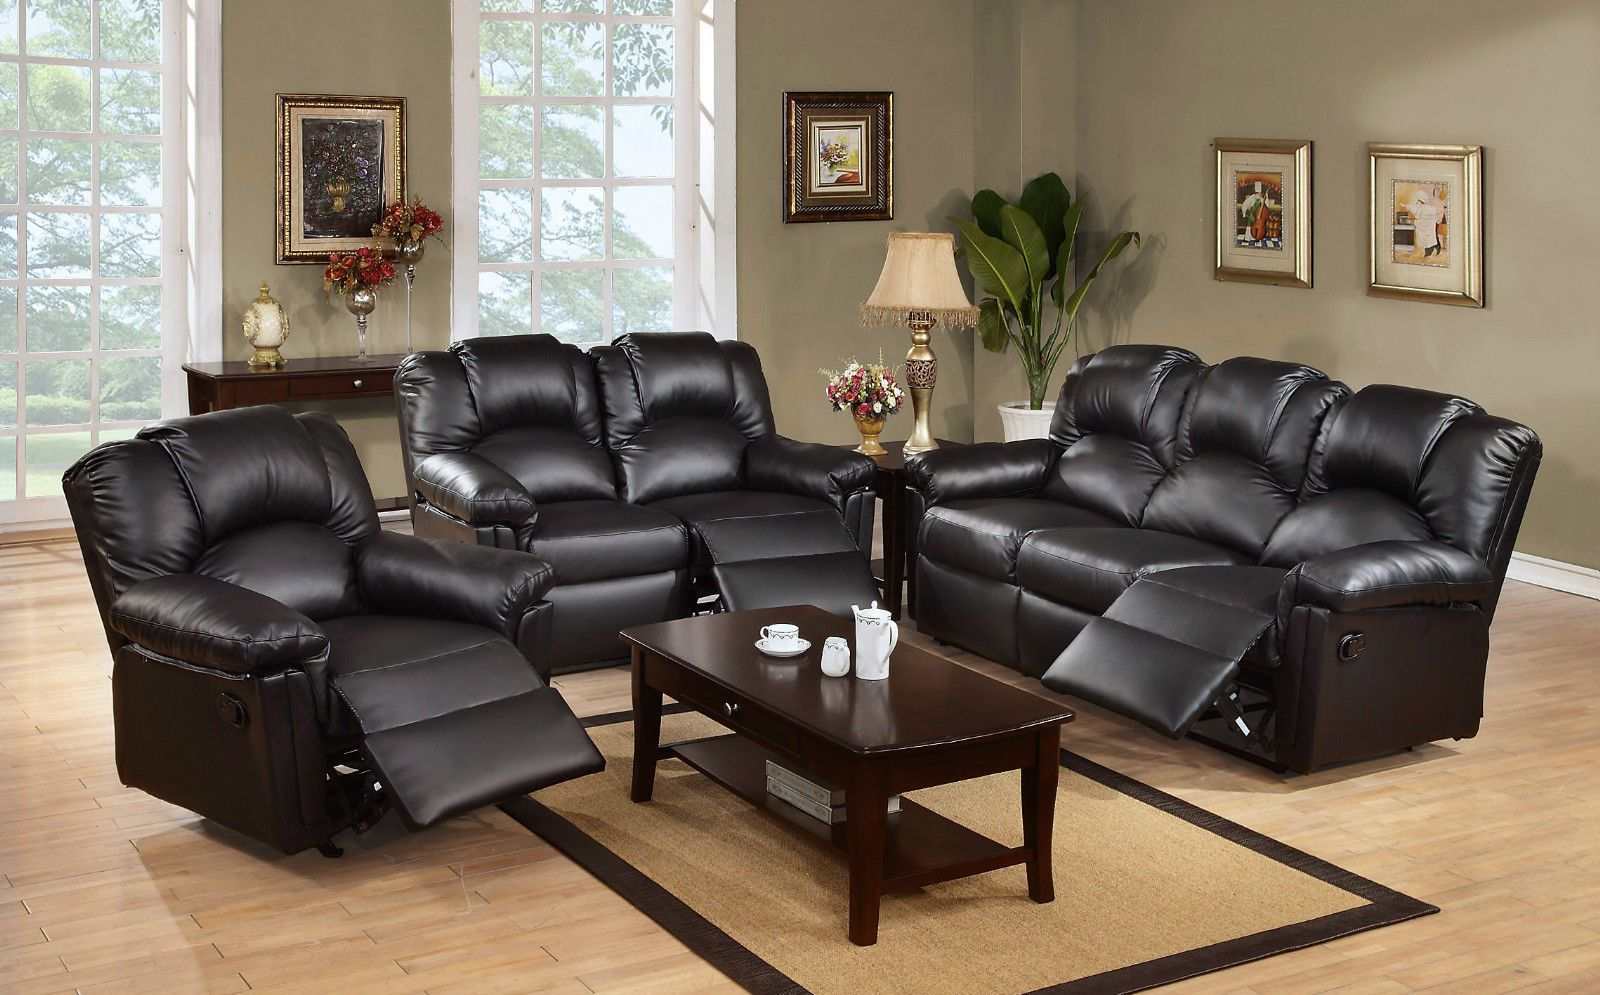 Marvelous New Modern Casana 3 2 Seater Bonded Leather Recliner Sofa Gmtry Best Dining Table And Chair Ideas Images Gmtryco